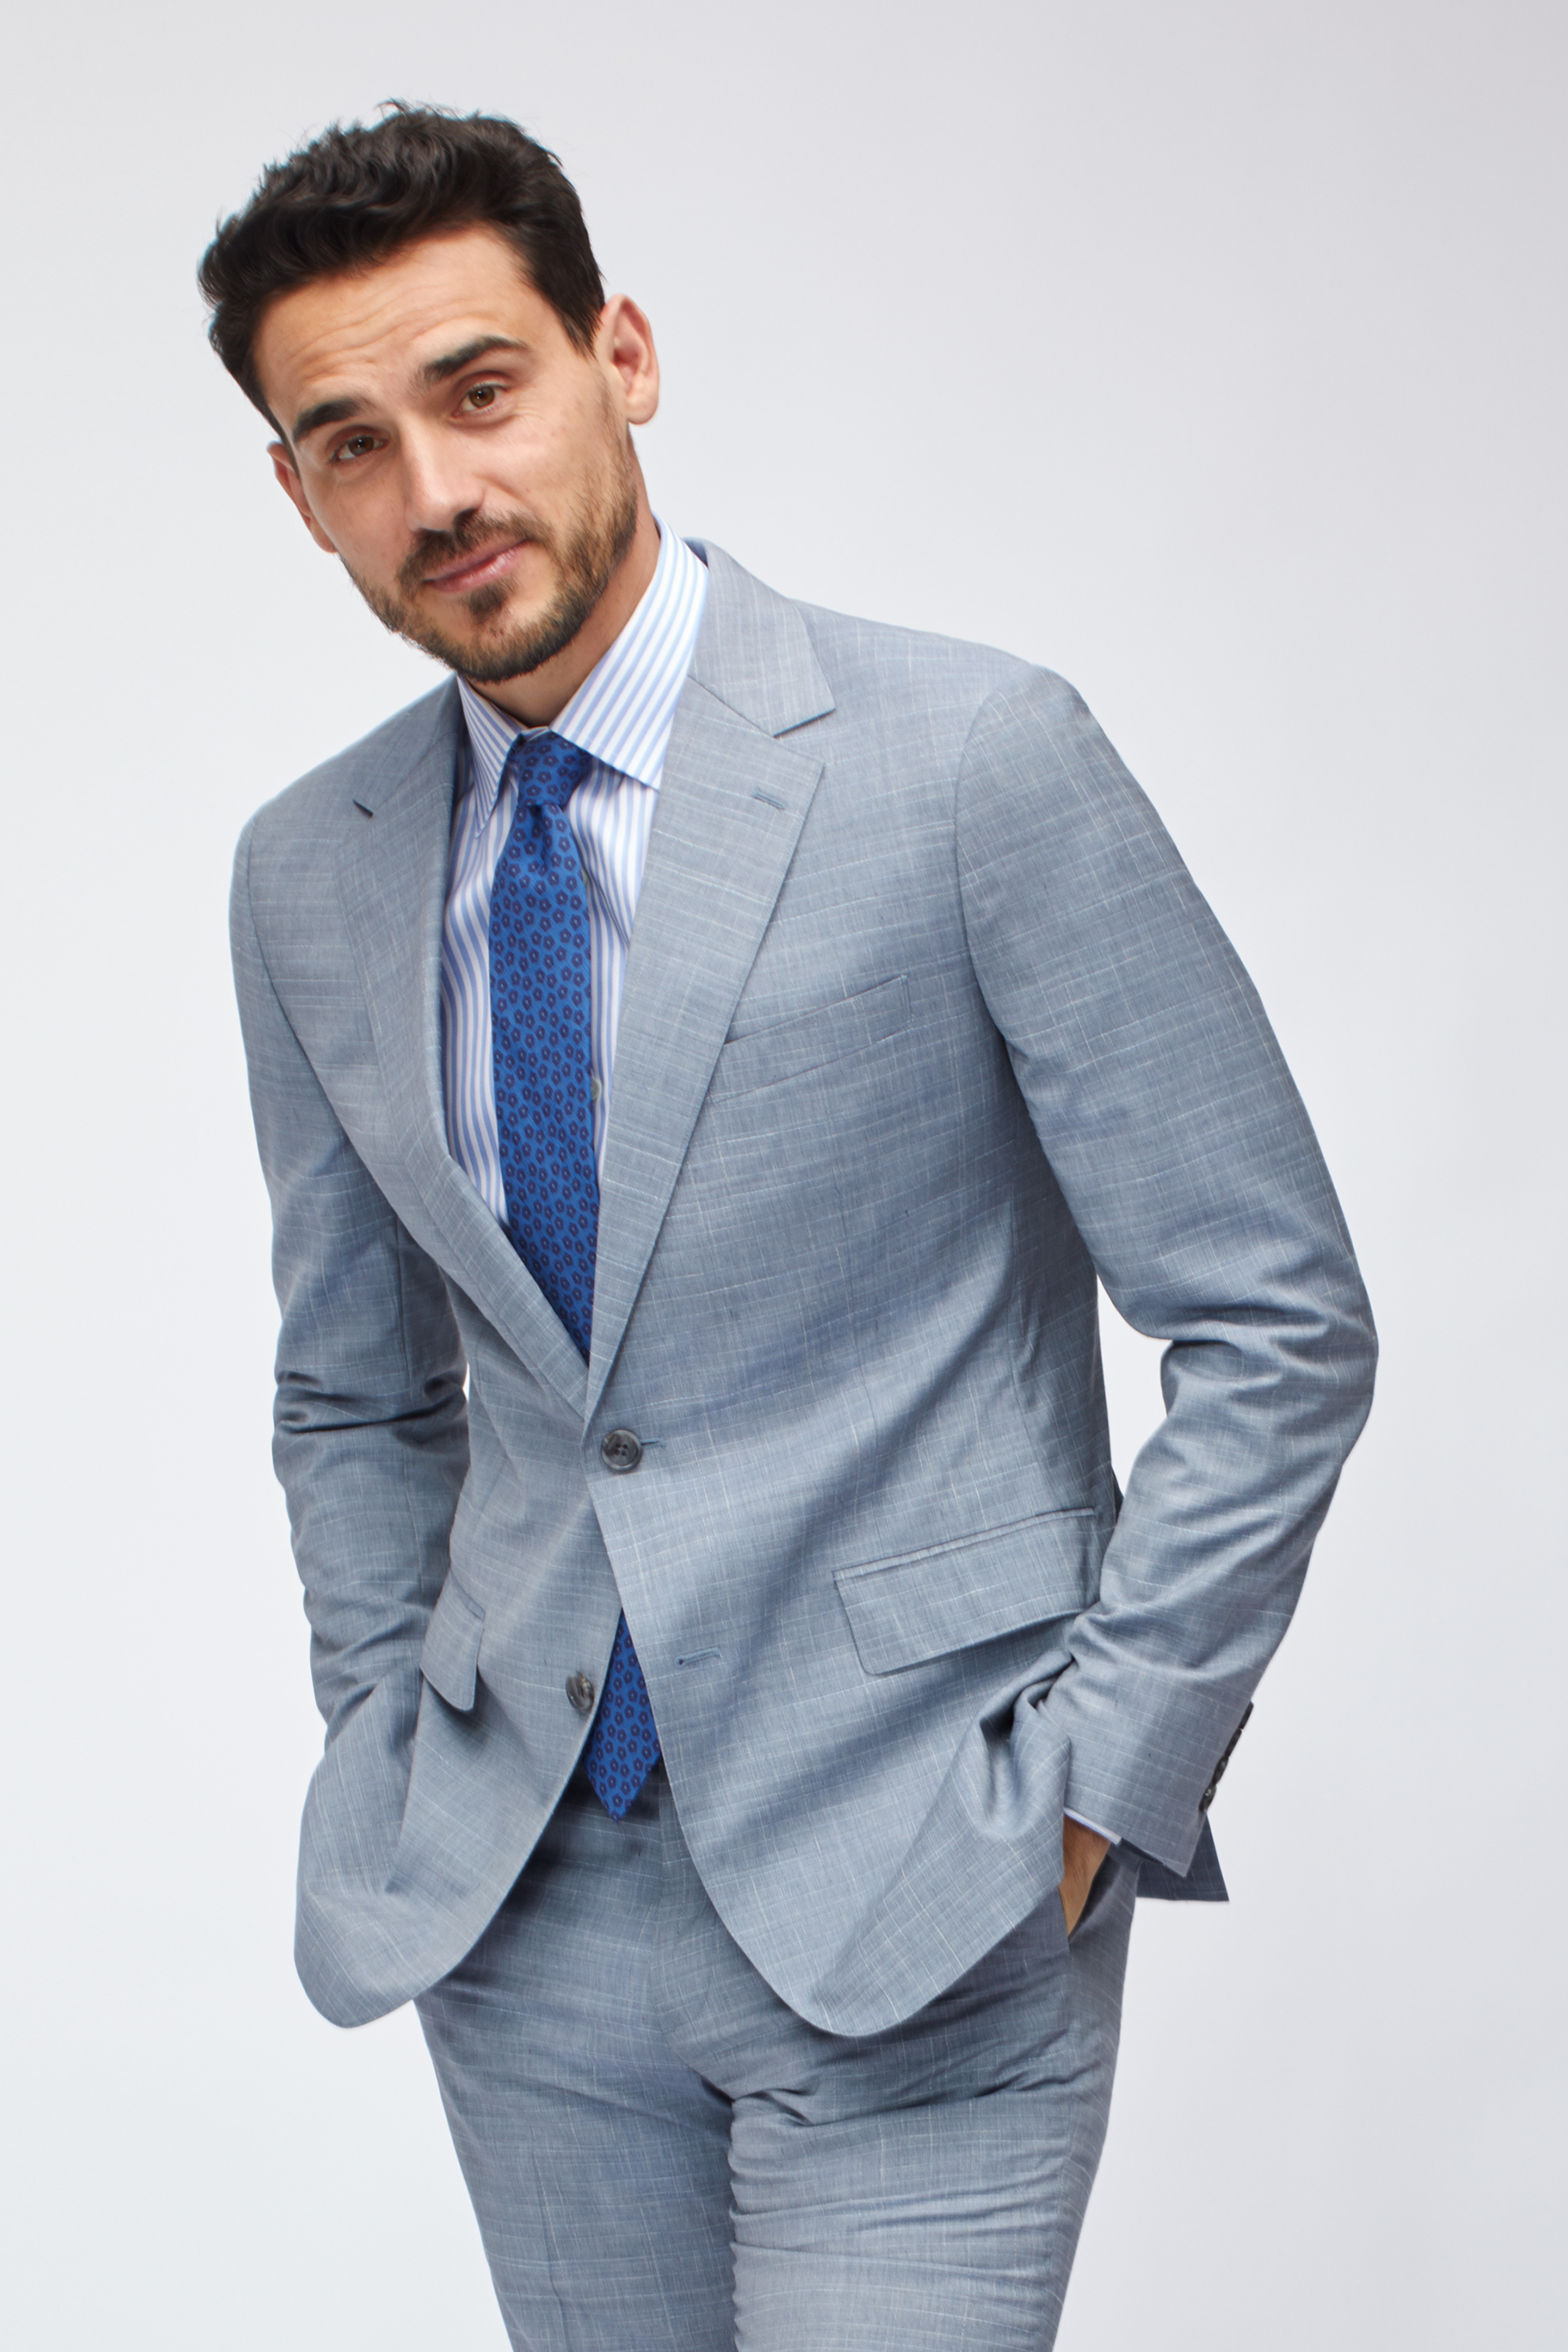 Bonobos: Better Fitting, Better Looking Men's Clothing